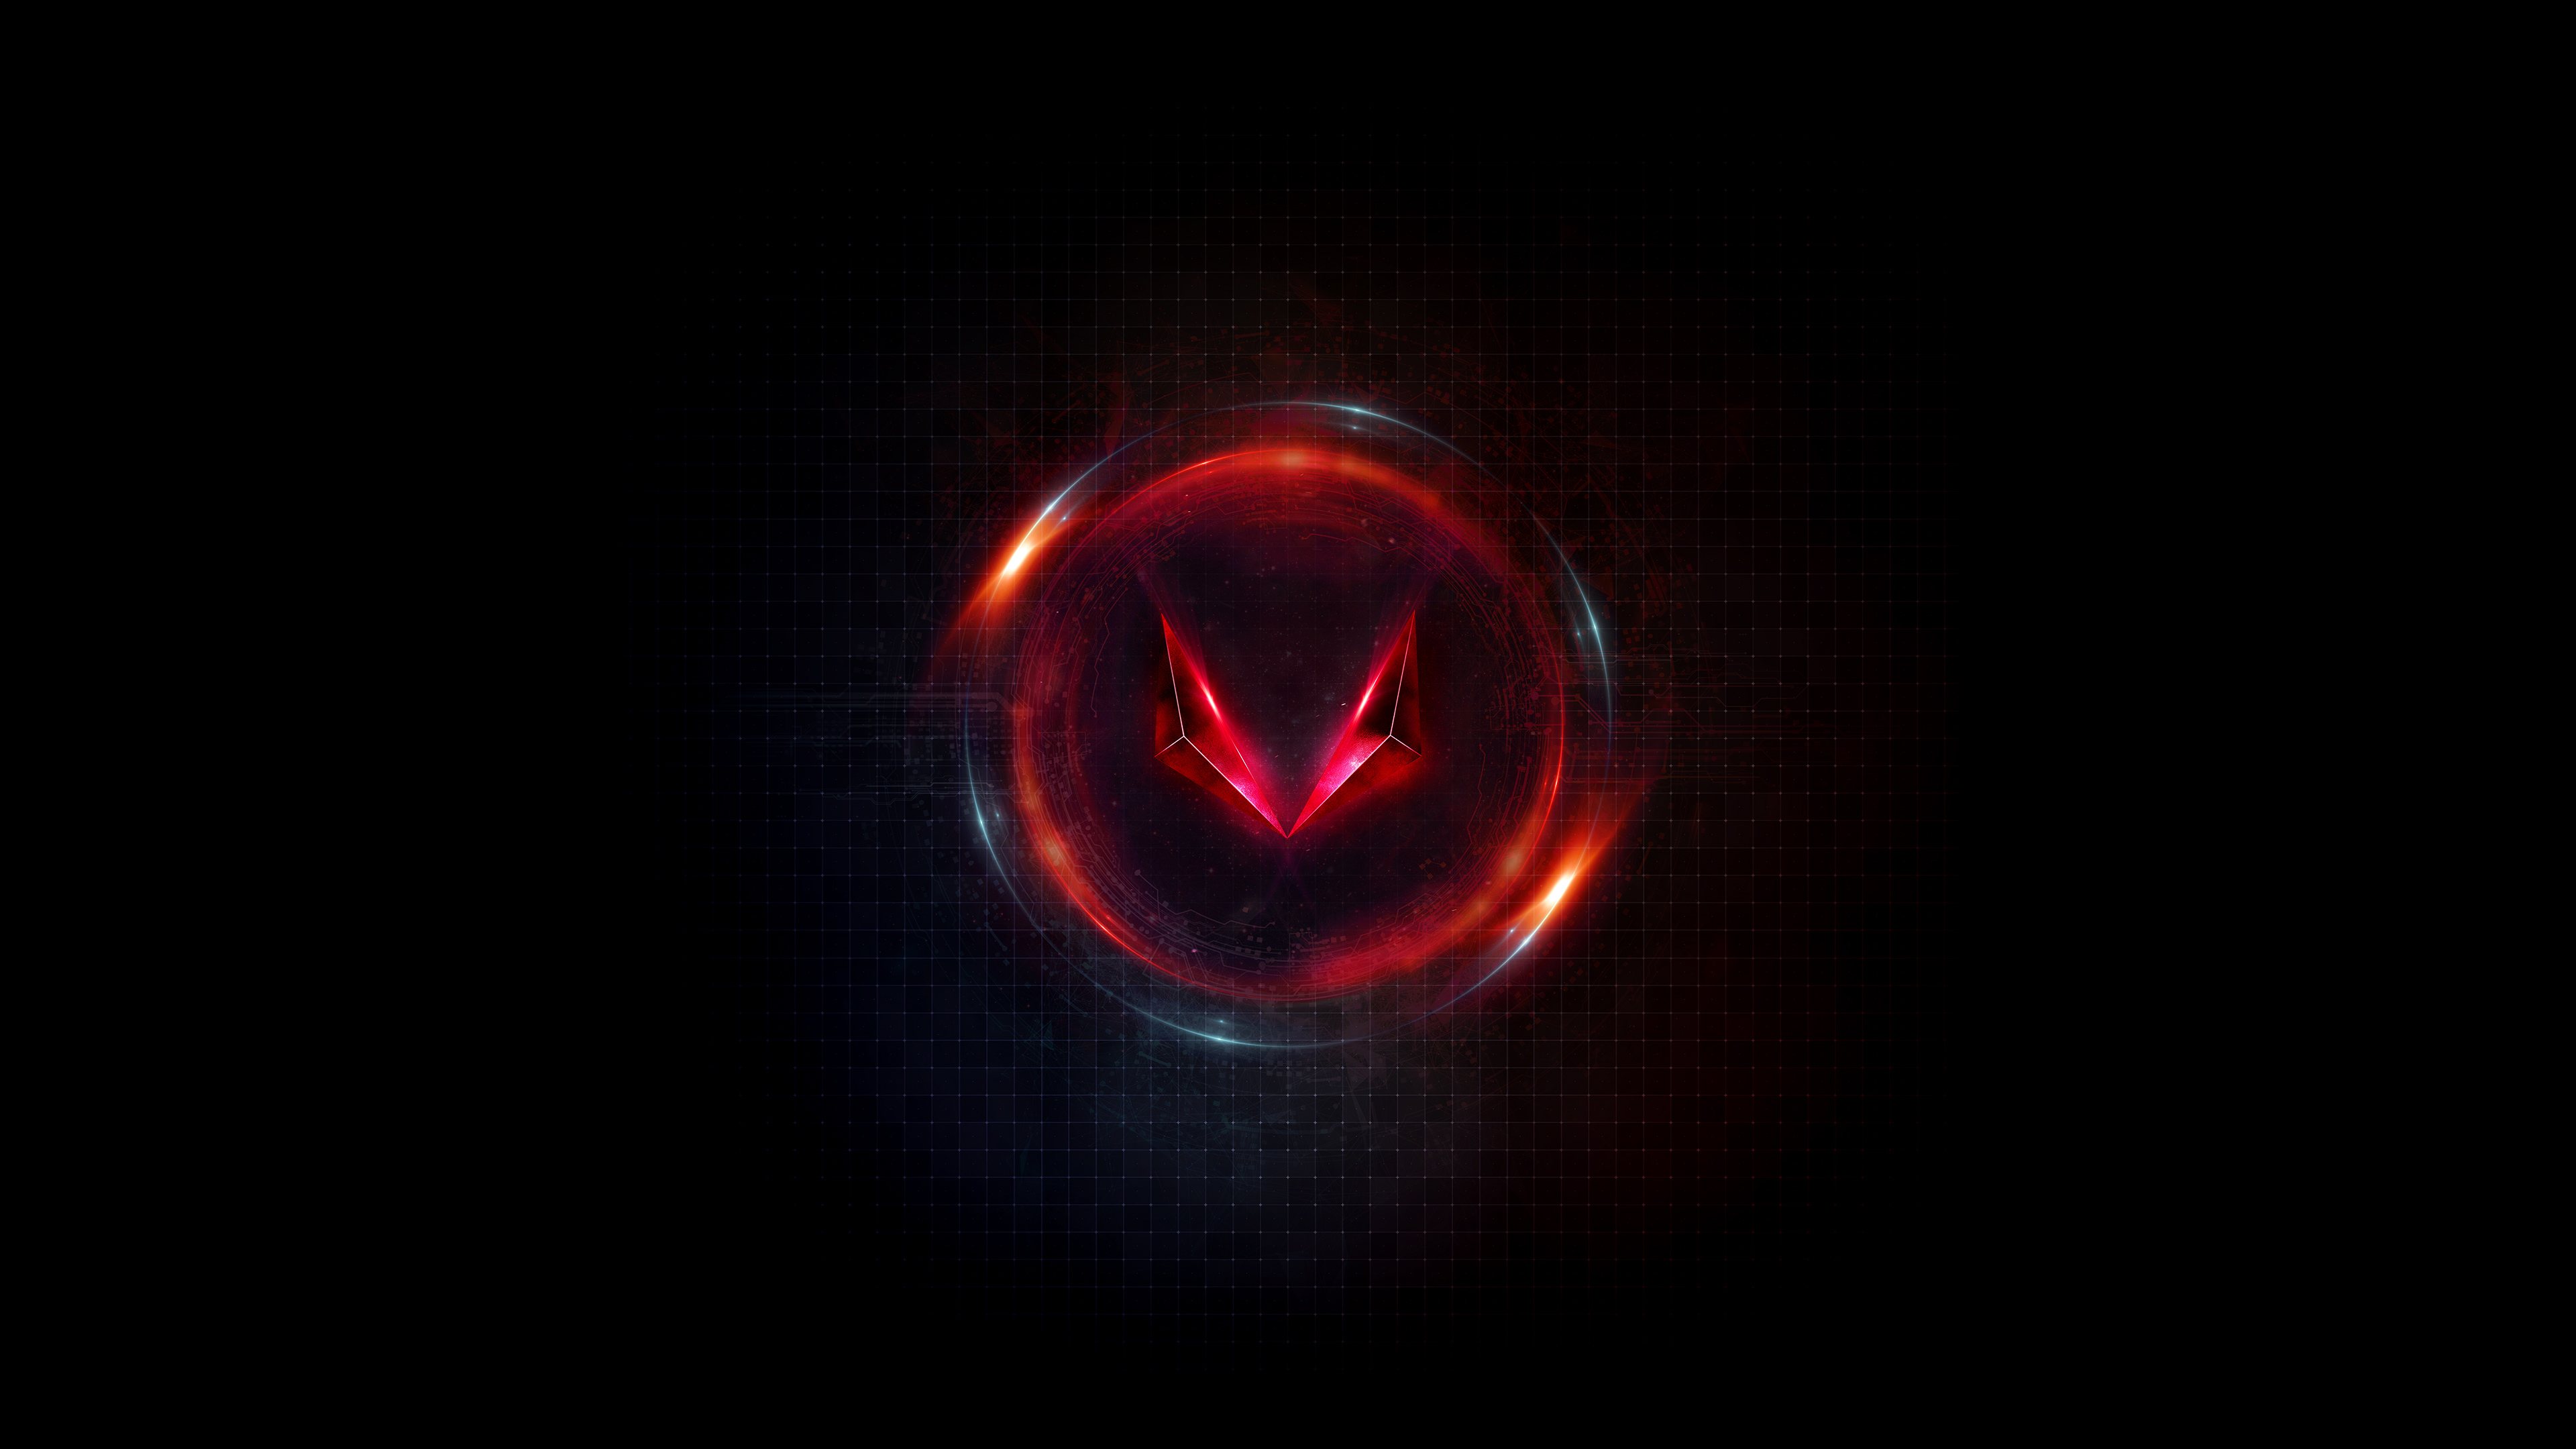 amd wallpapers teamstealth - photo #22